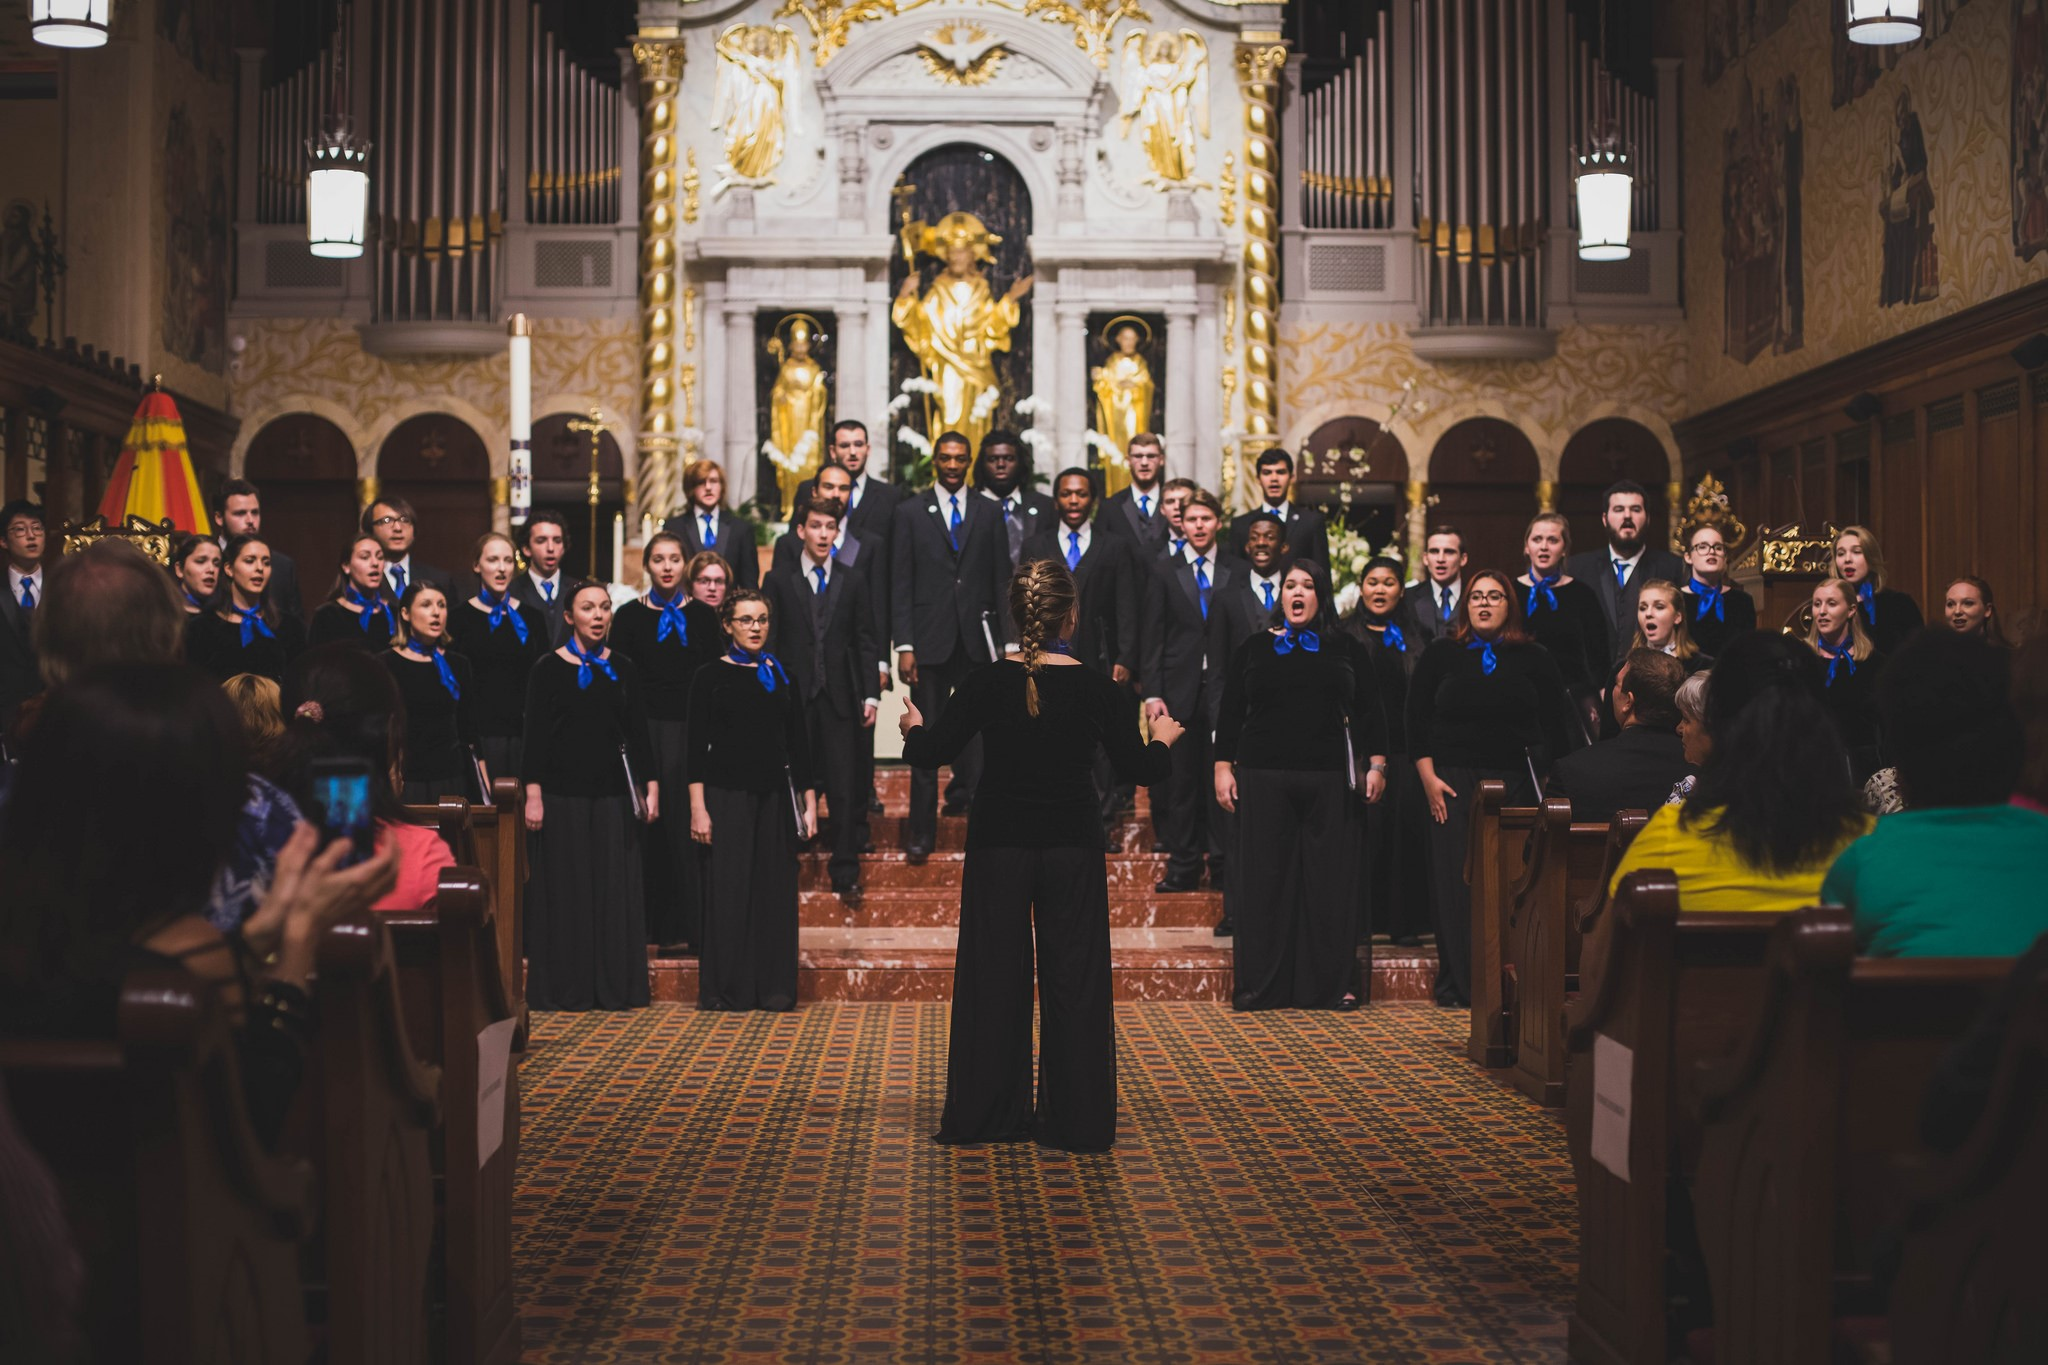 Chamber Singers performing at Seeking Refuge Concert